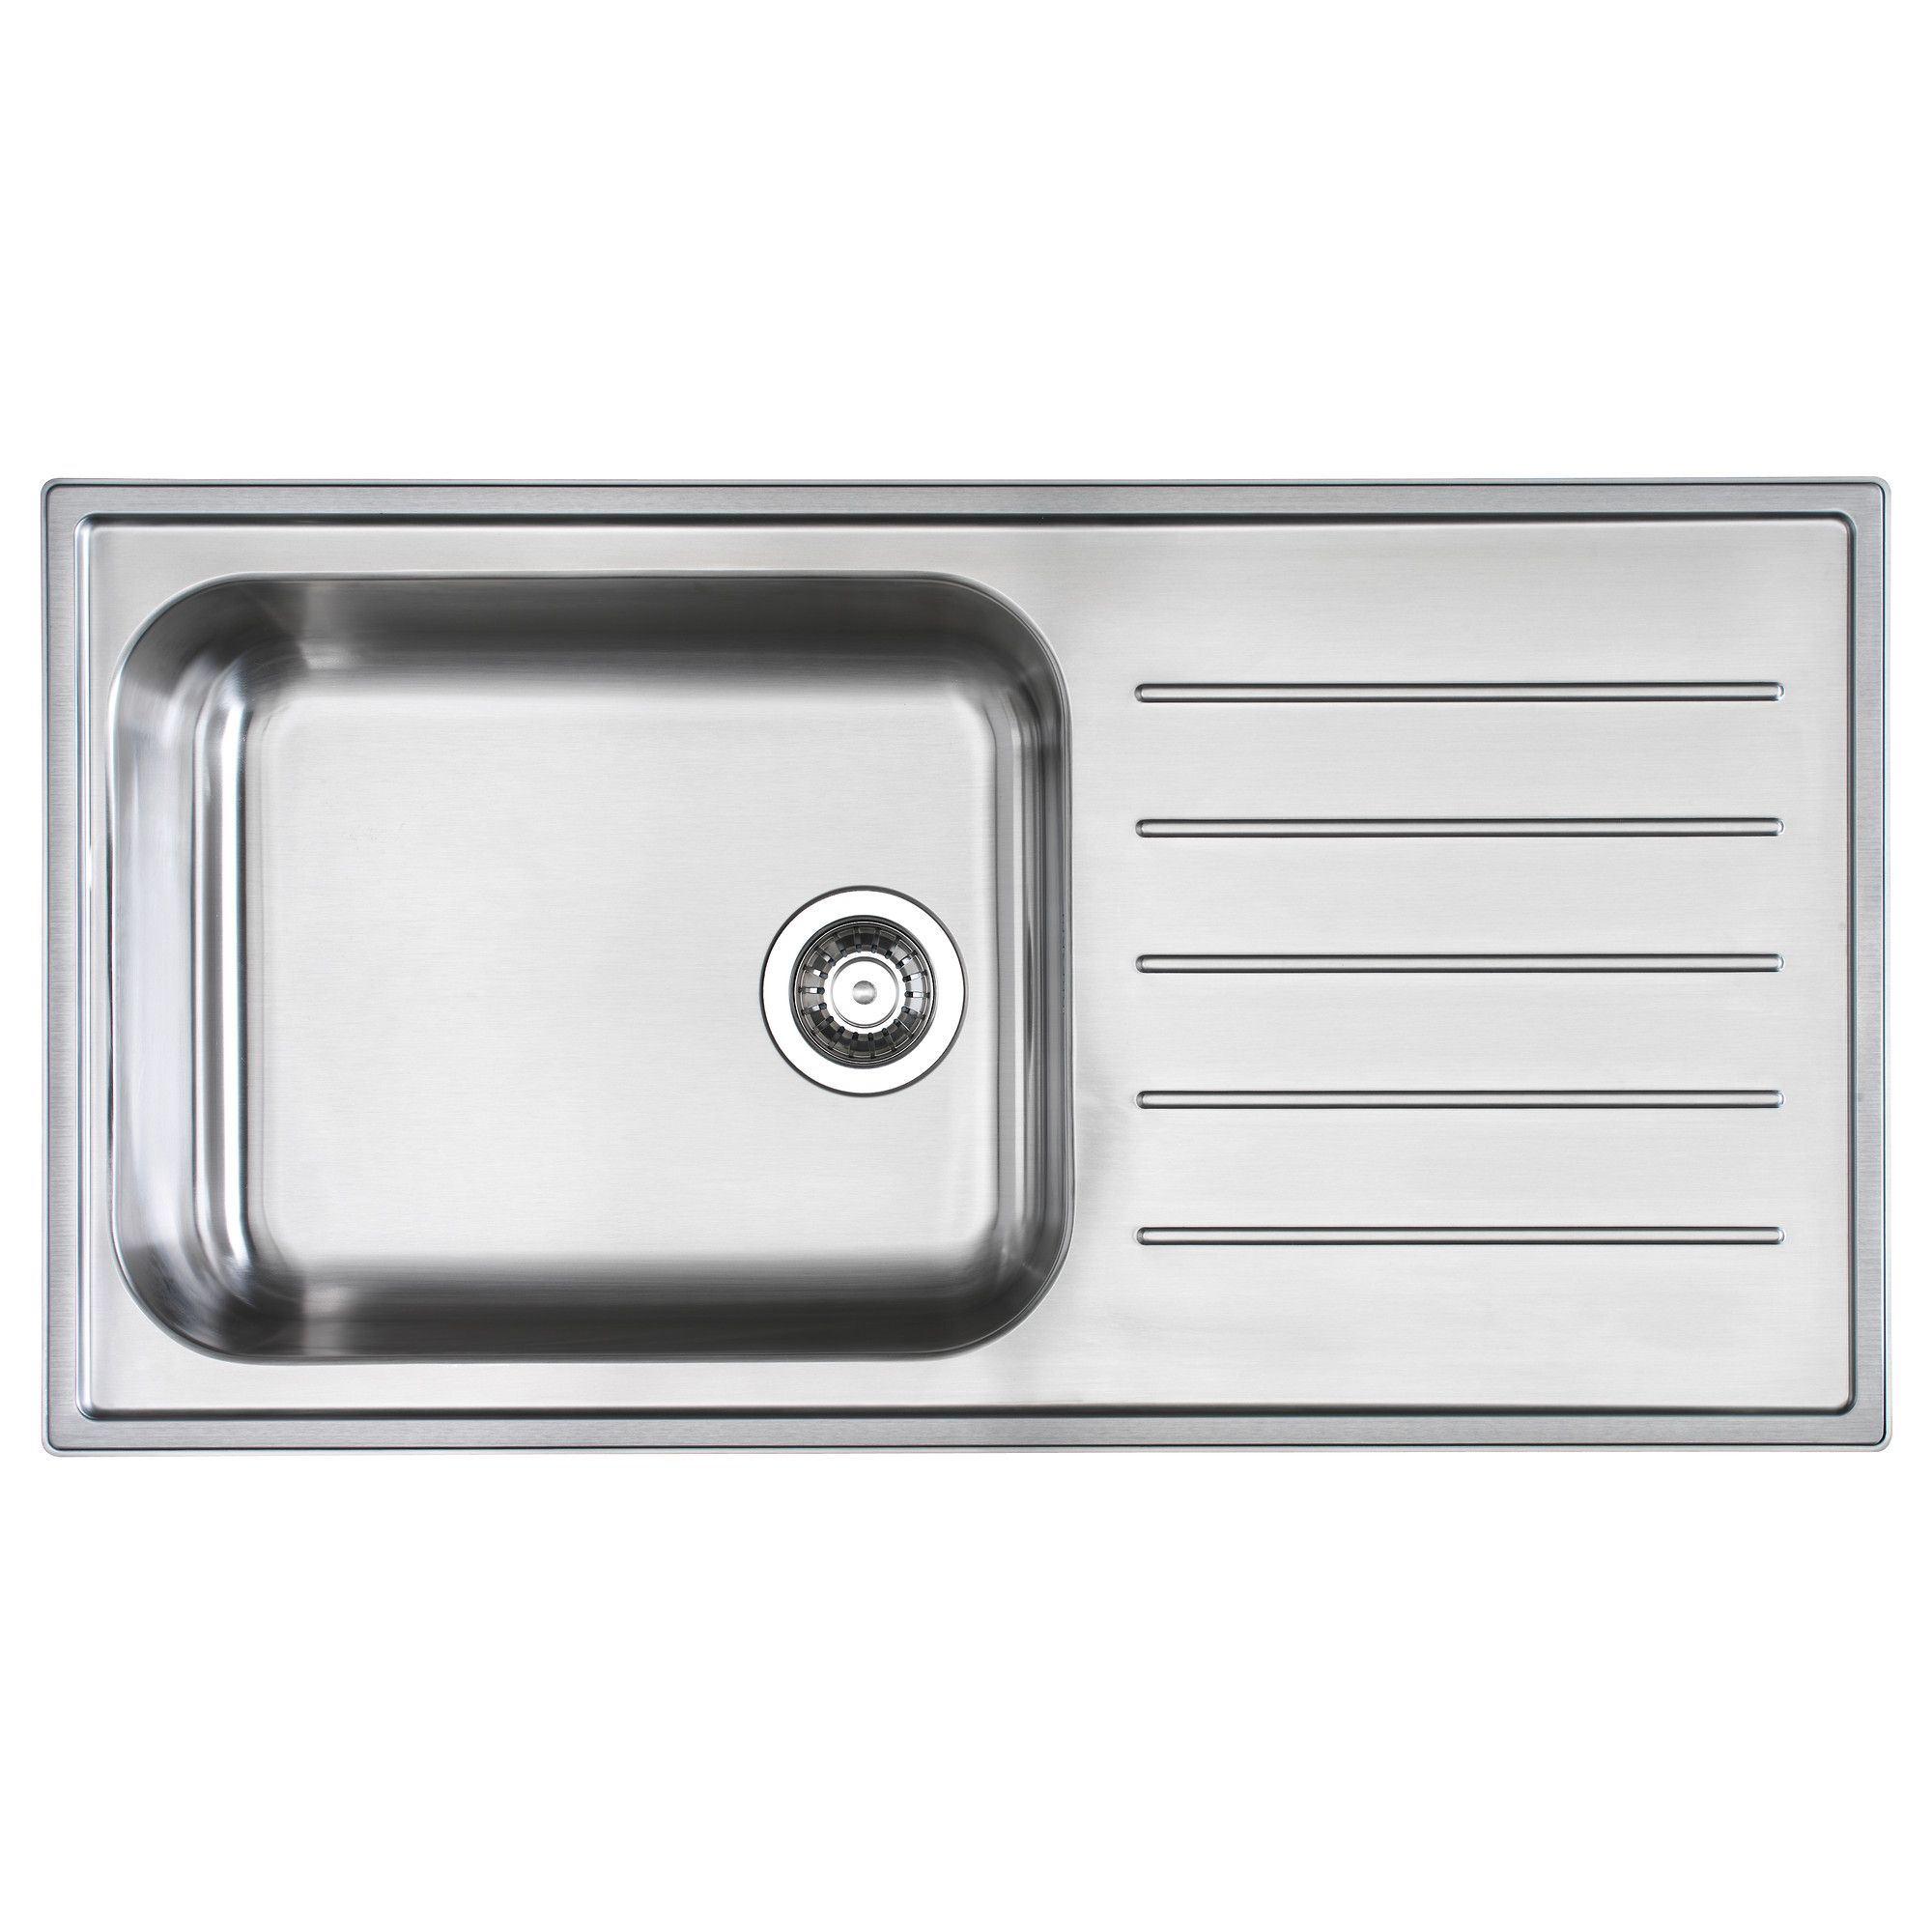 BOHOLMEN 1 Bowl Inset Sink With Drainer - IKEA